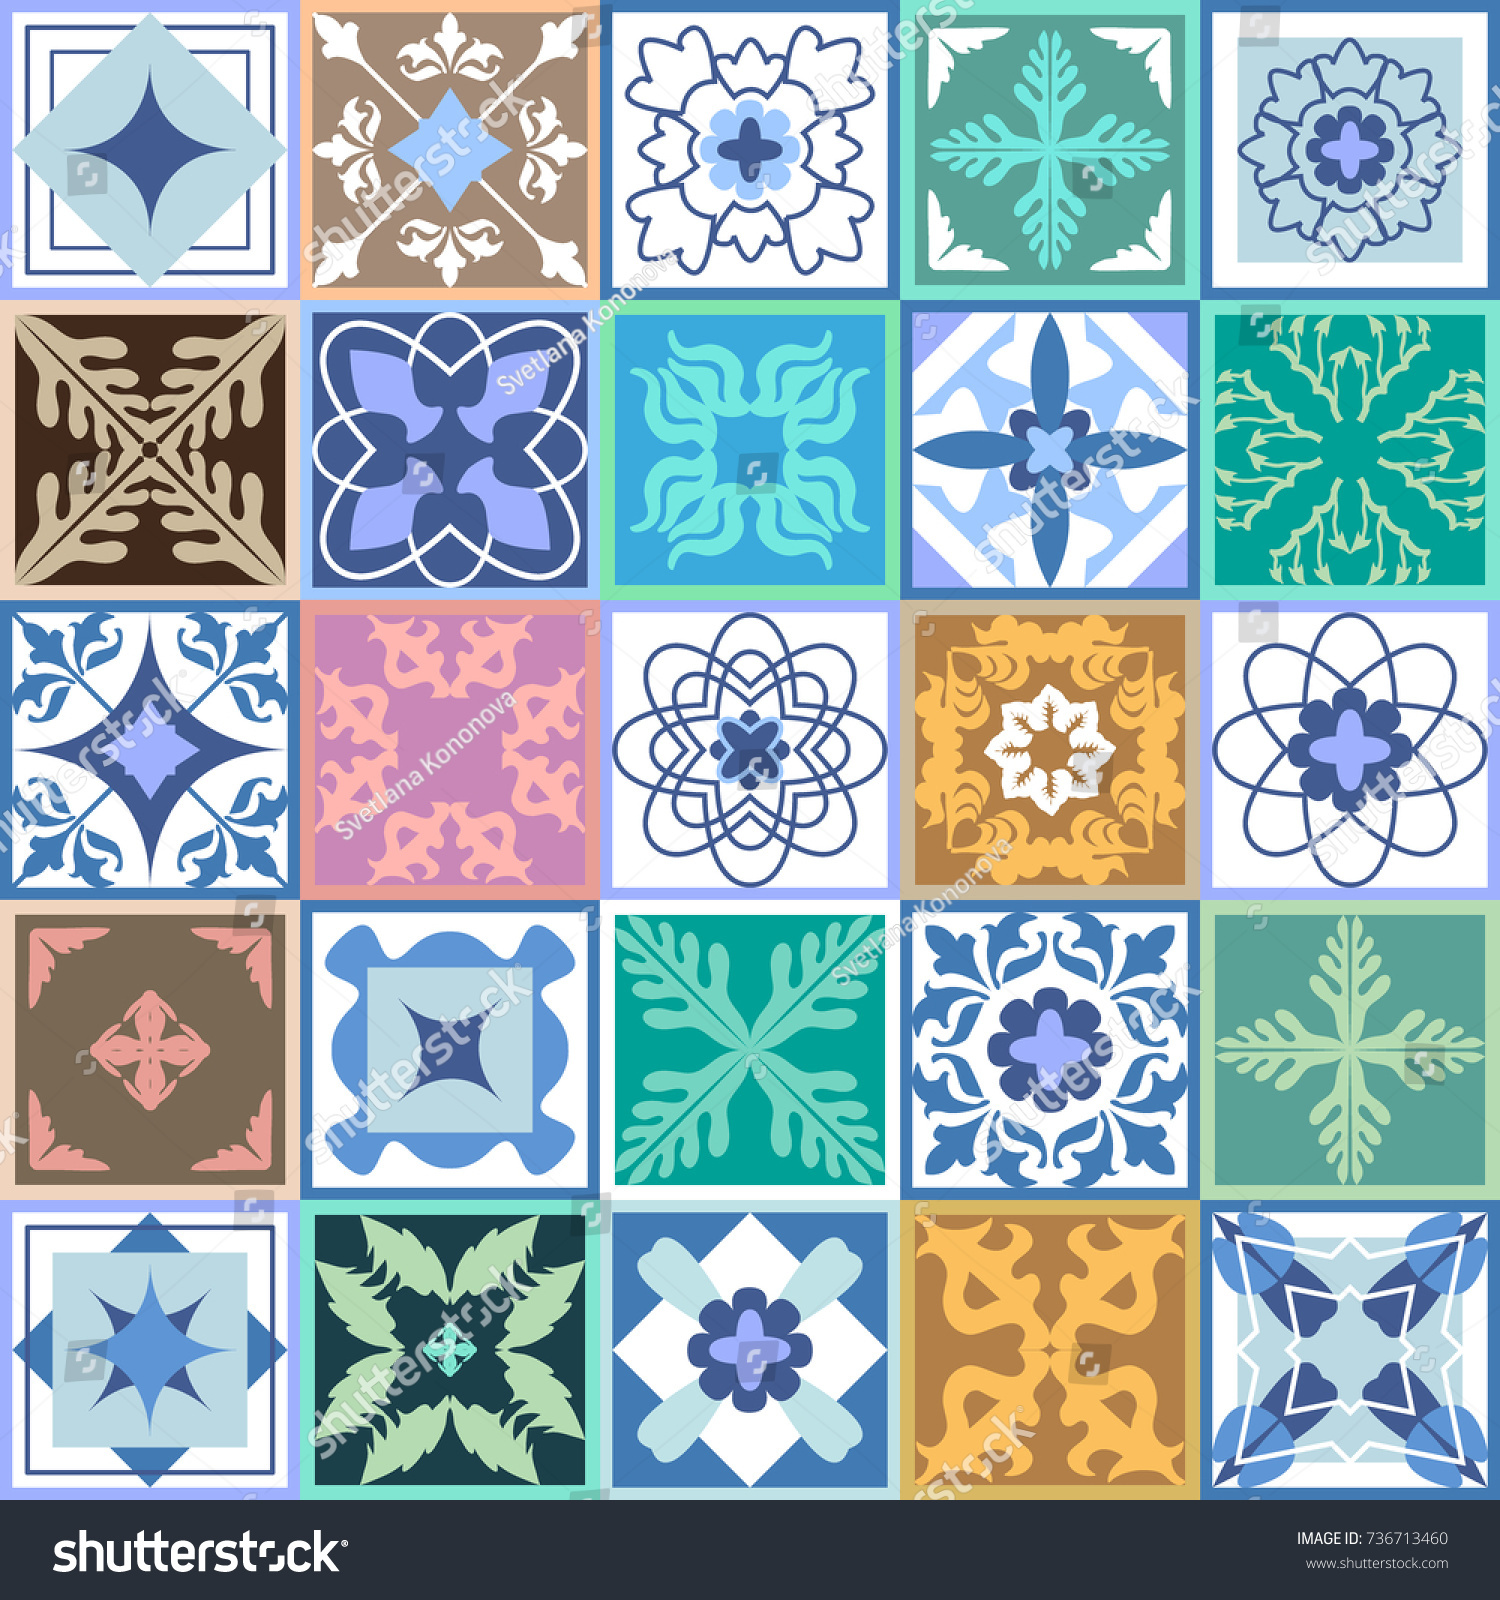 Classical set glazed ceramic tiles mosaic stock vector 736713460 classical set of glazed ceramic tiles mosaic with moroccan spanish portuguese motifs dailygadgetfo Gallery